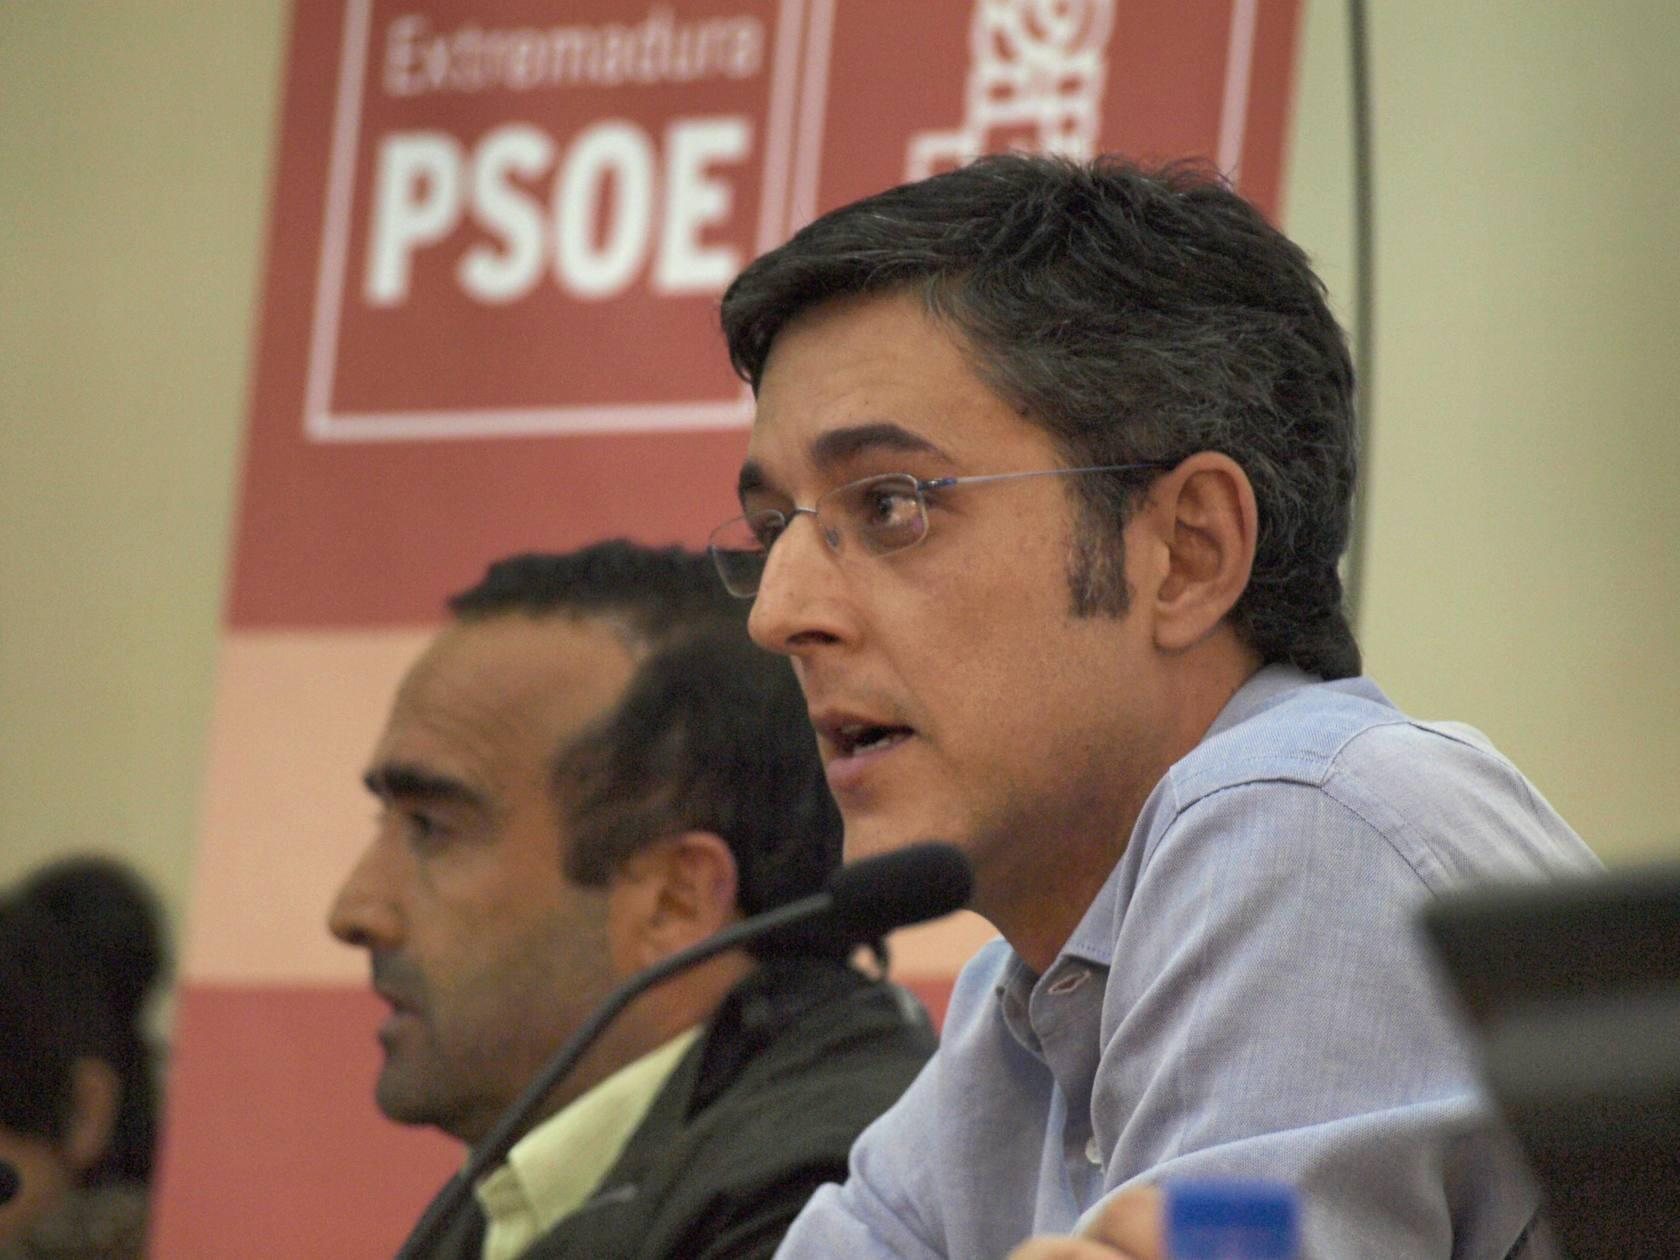 El PSOE cacere&ntilde;o abre las puertas a Eduardo Madina